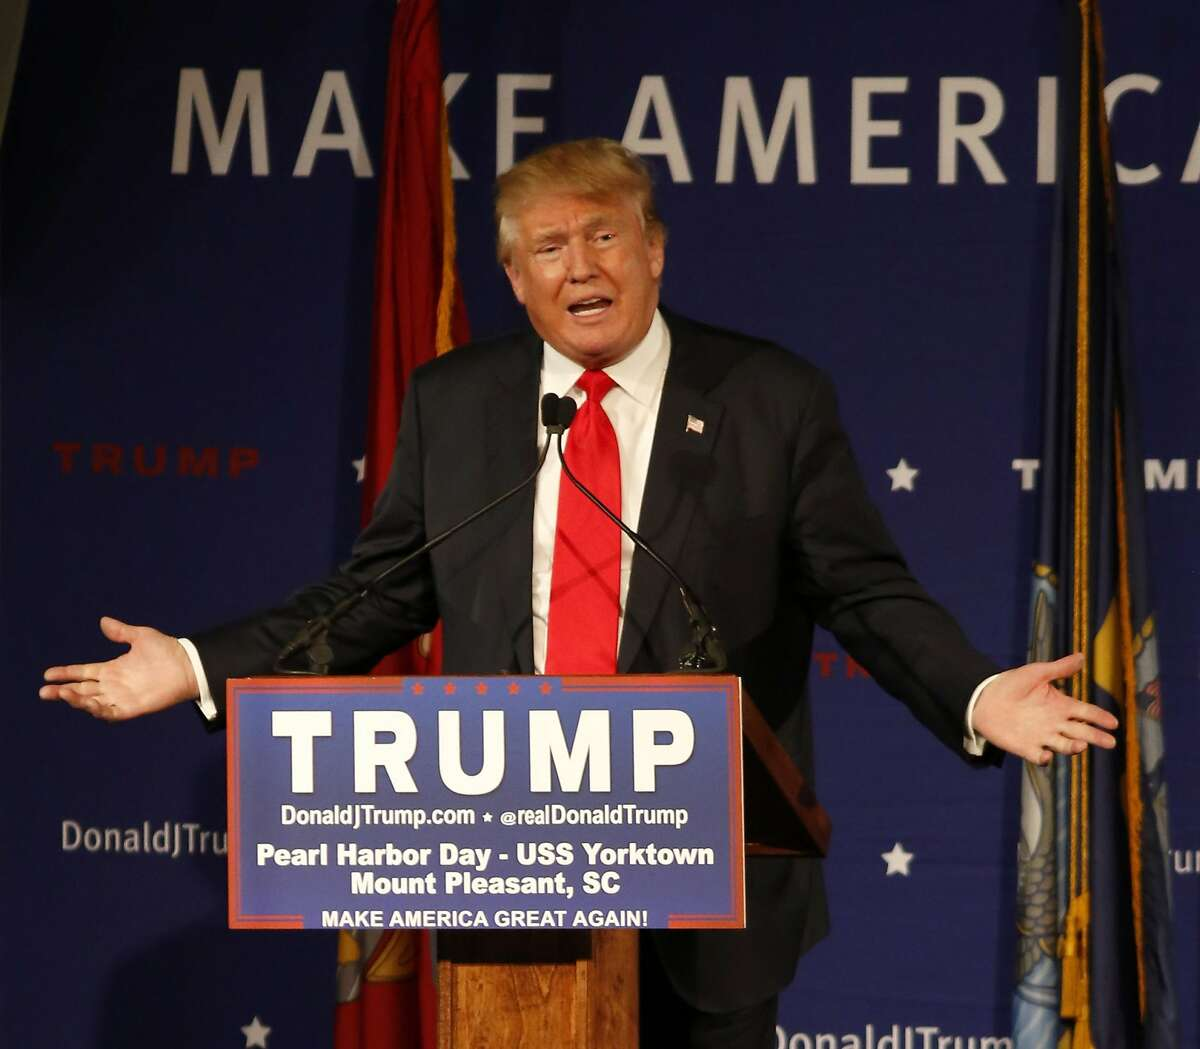 Republican presidential candidate Donald Trump speaks aboard the aircraft carrier USS Yorktown in Mt. Pleasant, S.C. on Dec. 7.